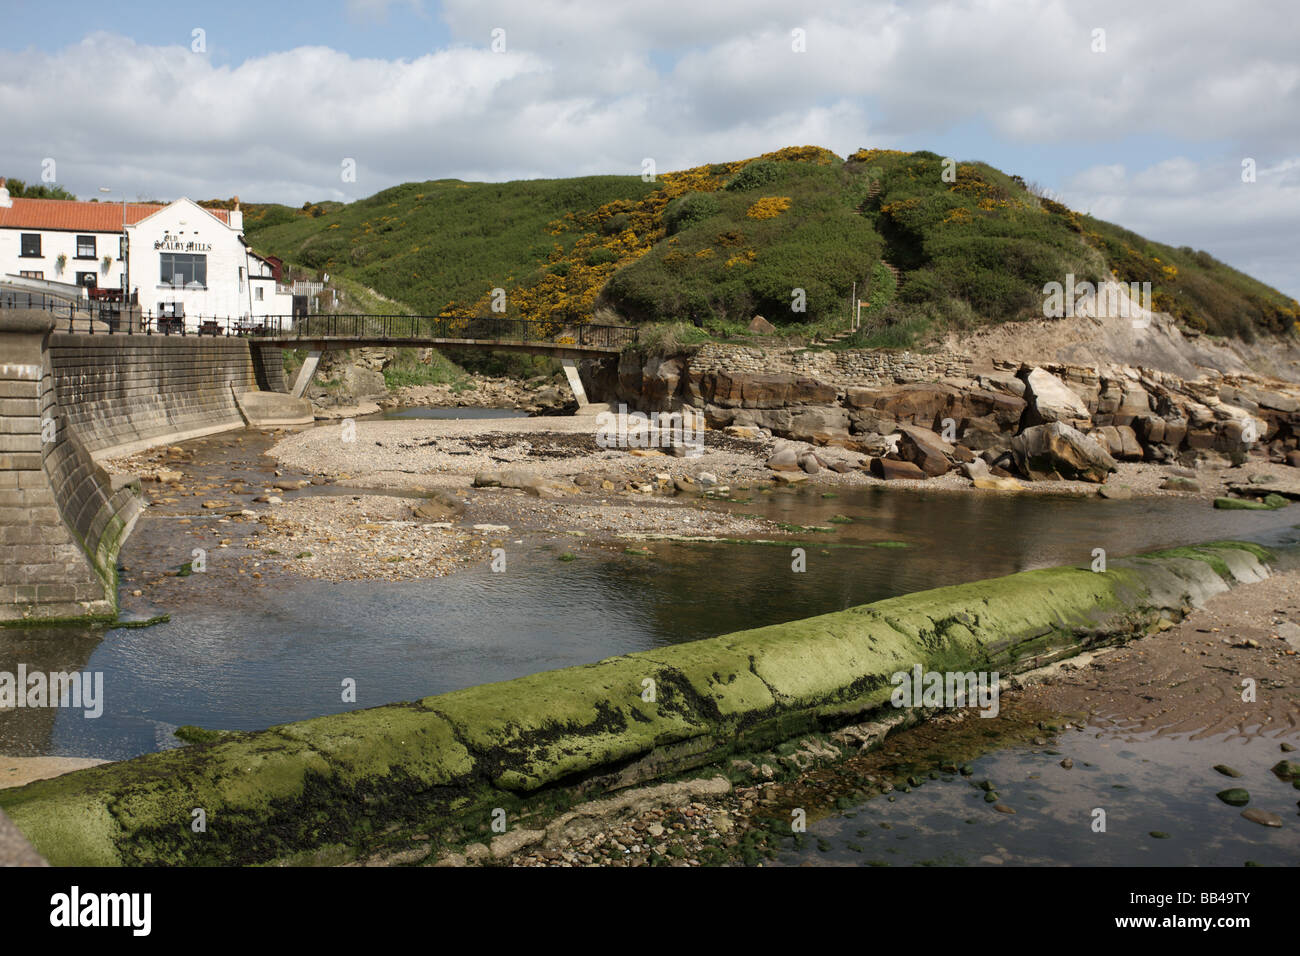 scalby mills near scarborough north yorkshire stock photo royalty free vector stock royalty free vector graphics